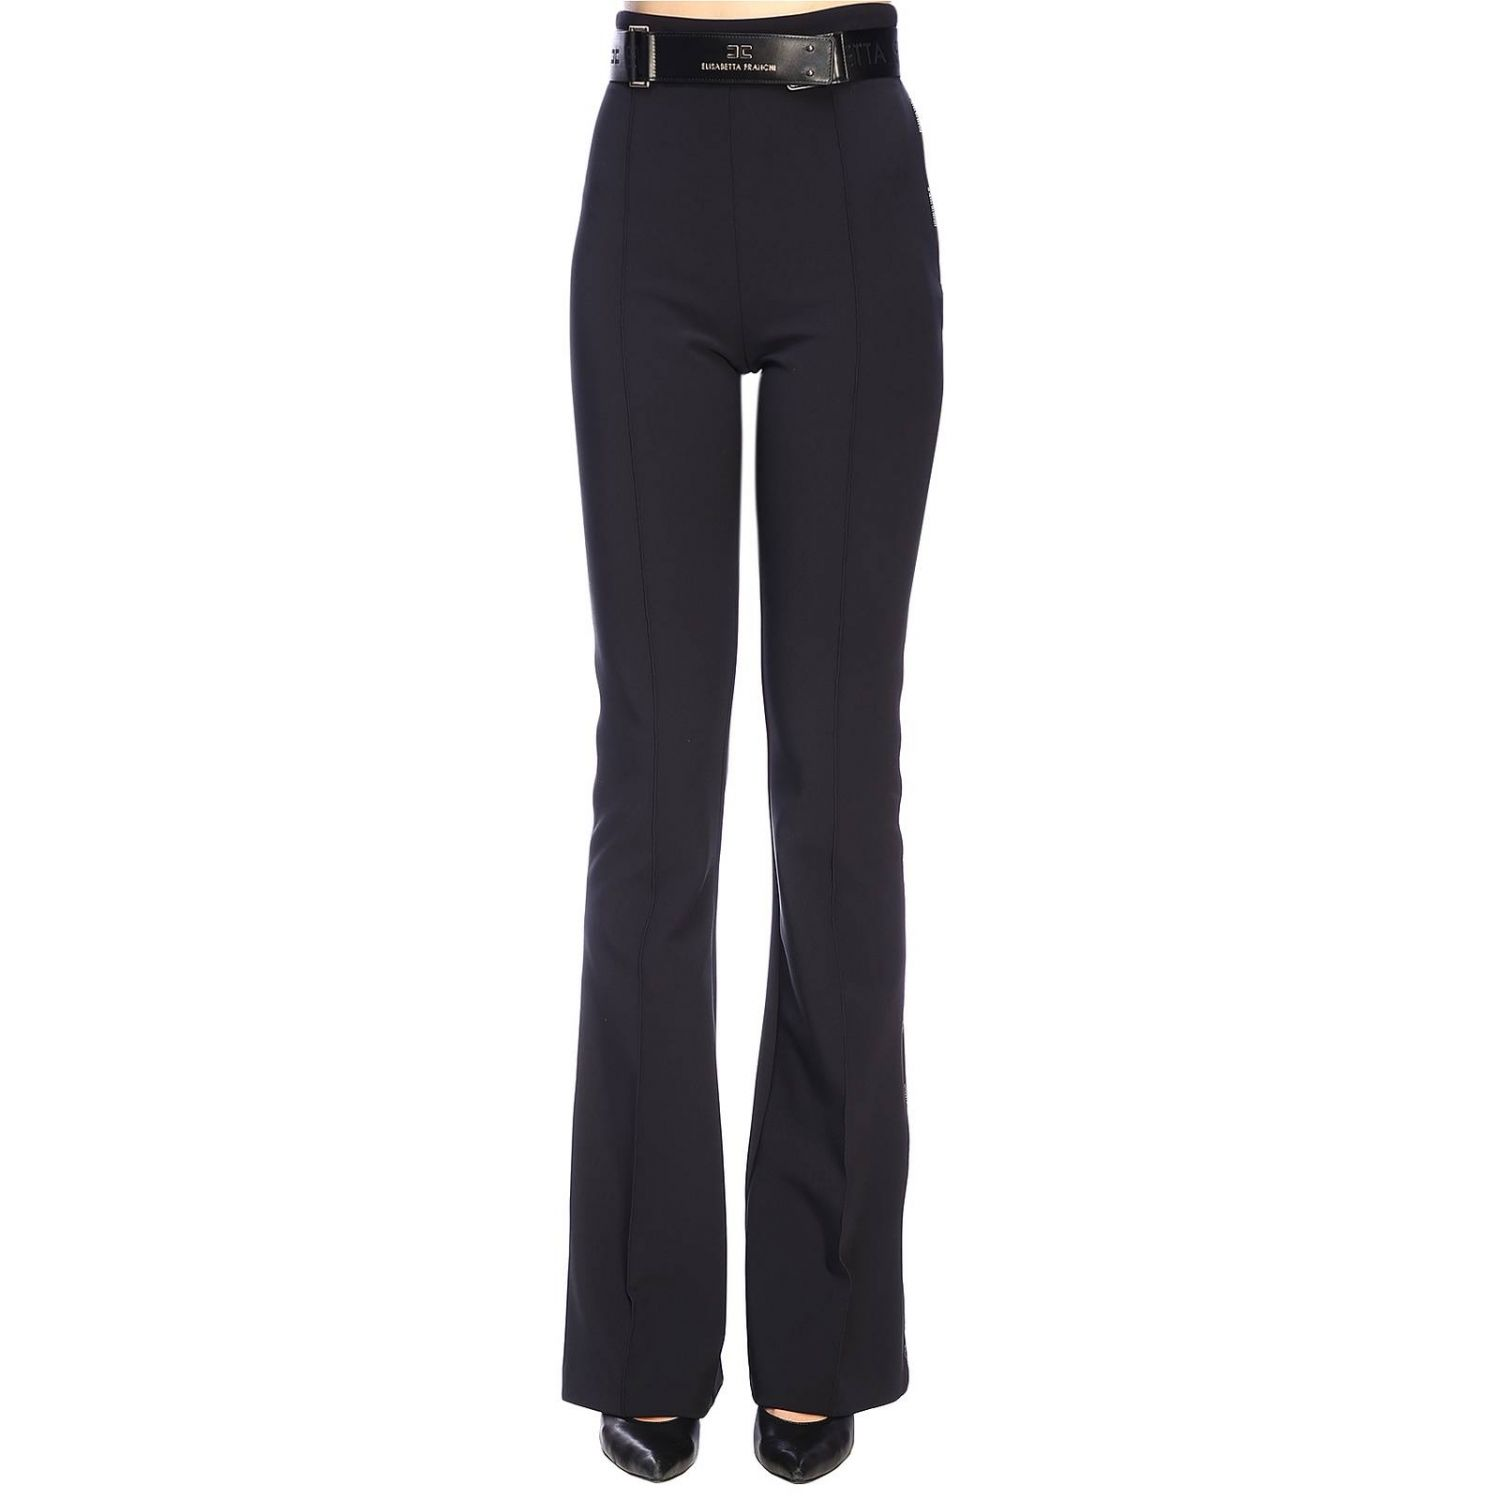 Trousers women Elisabetta Franchi black 1